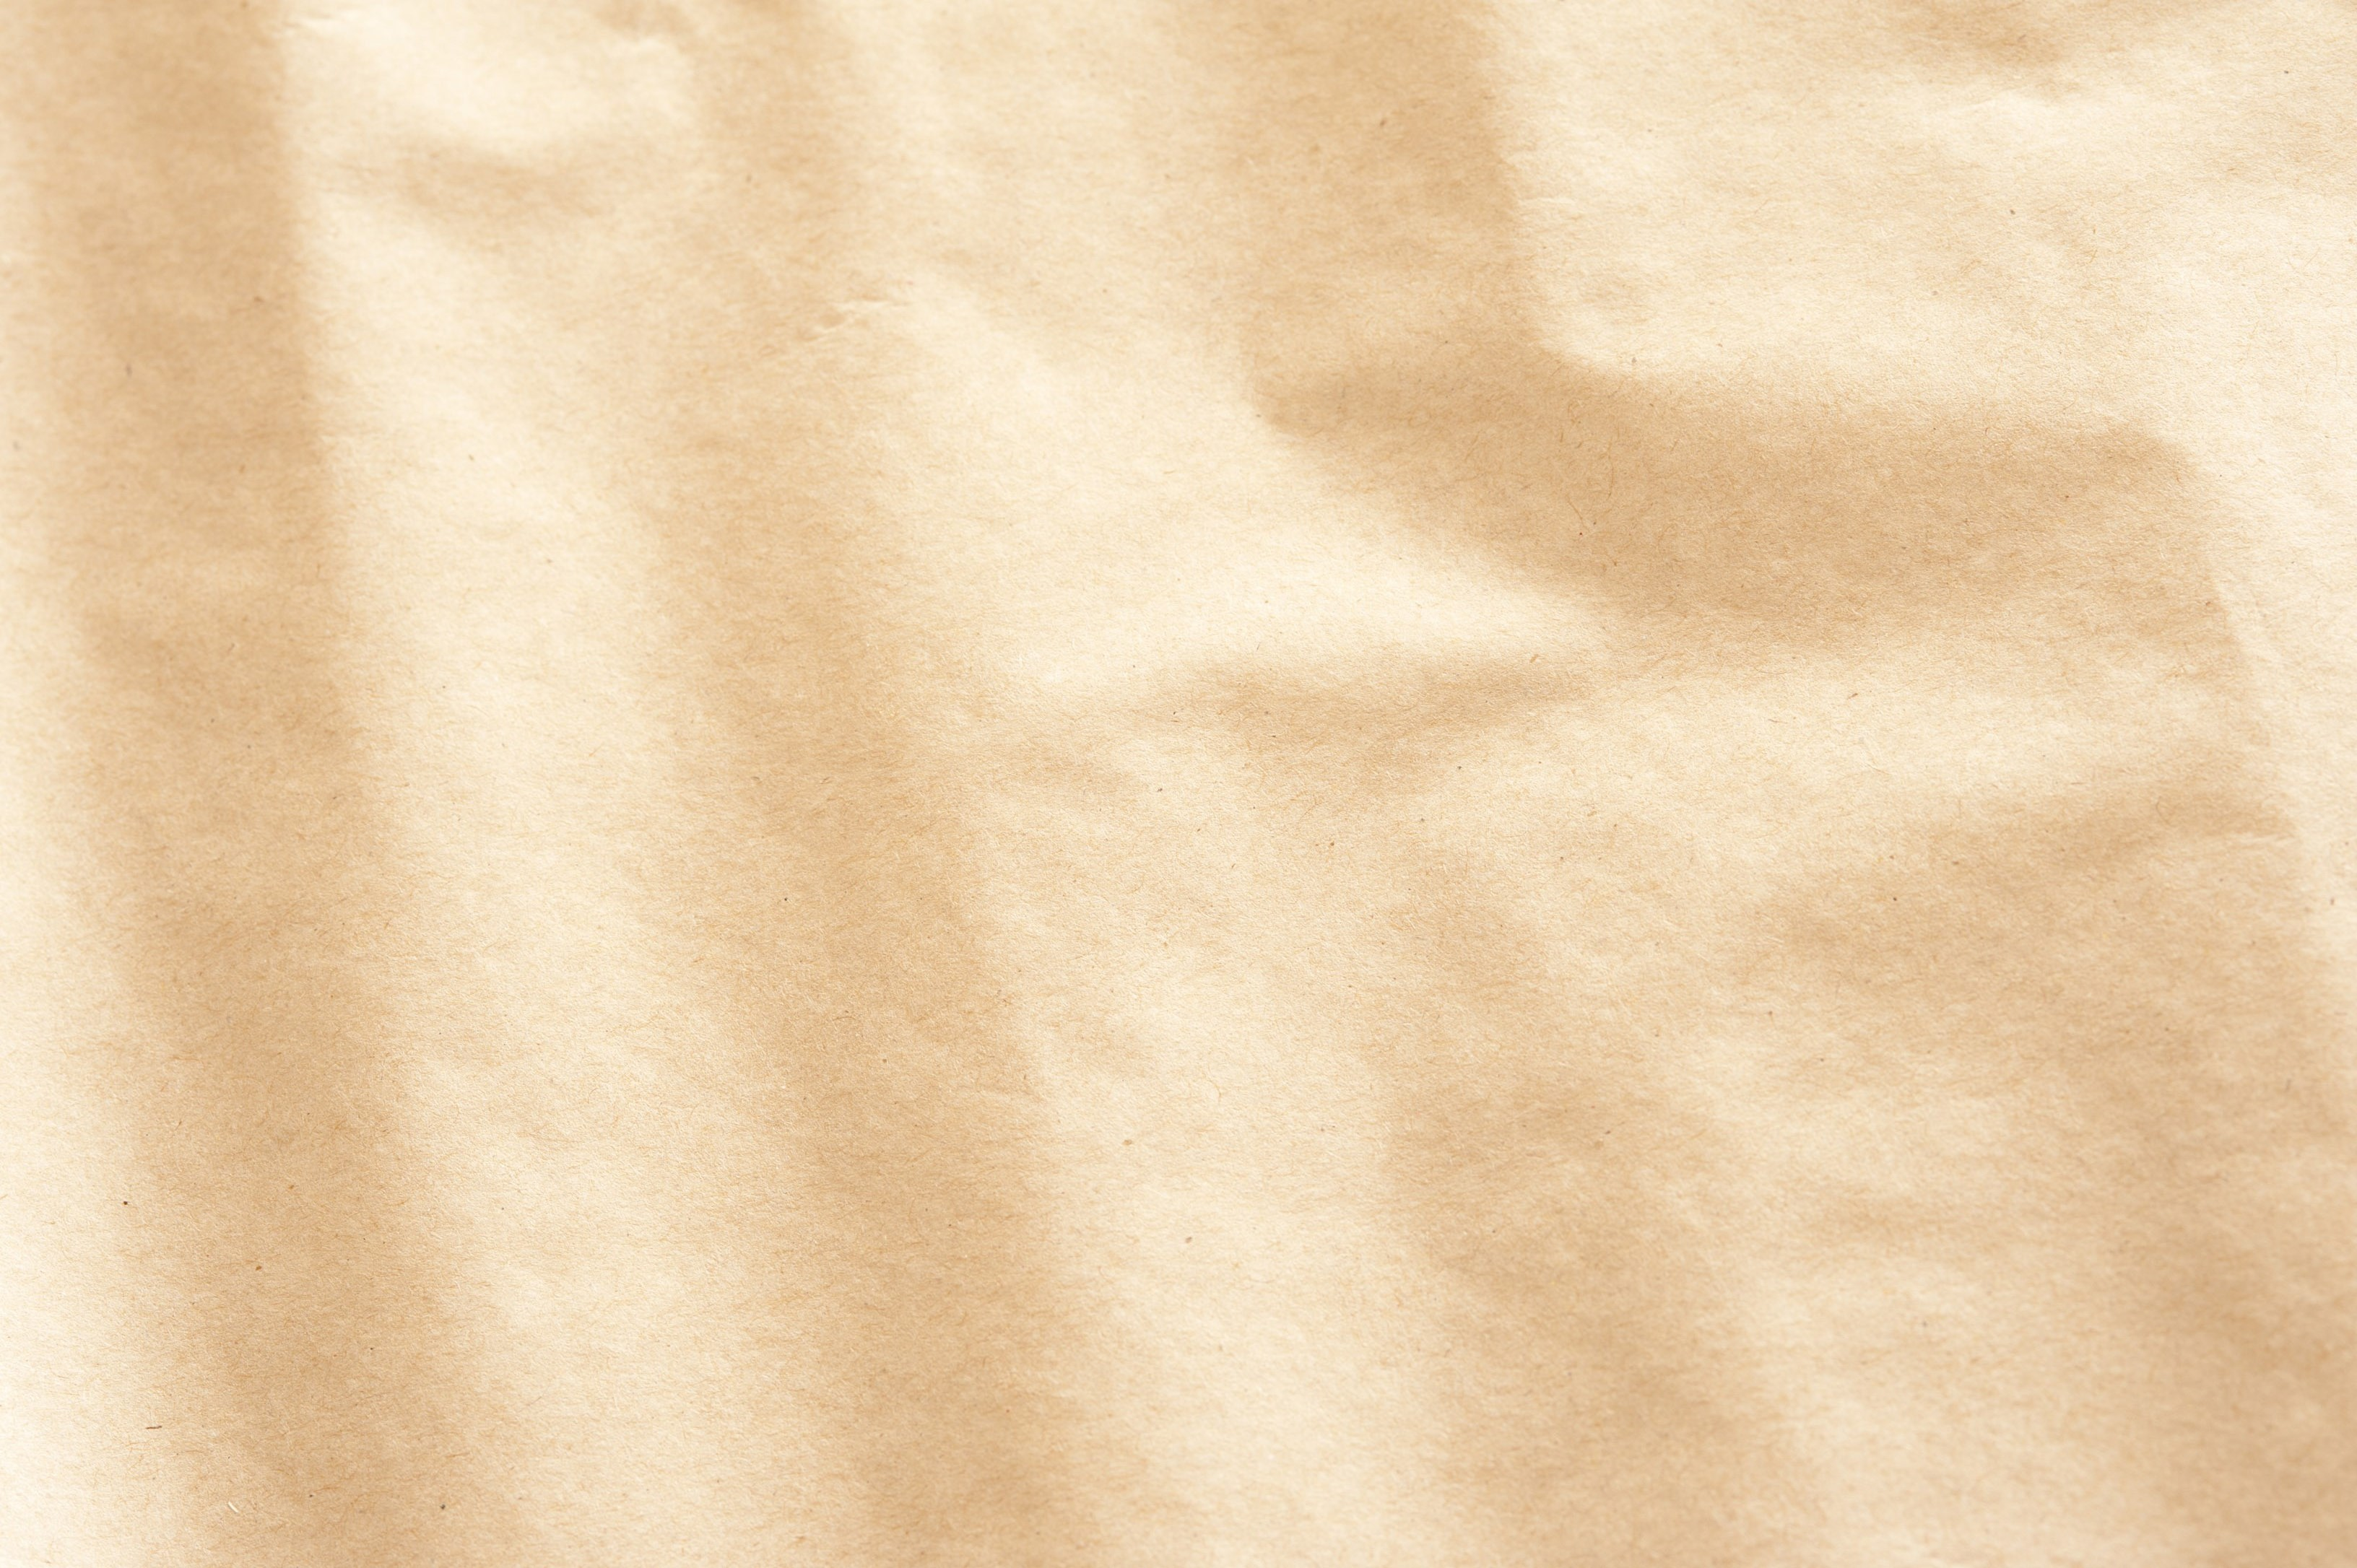 kraft paper Find kraft paper stock images in hd and millions of other royalty-free stock photos, illustrations, and vectors in the shutterstock collection thousands of new, high-quality pictures added every day.